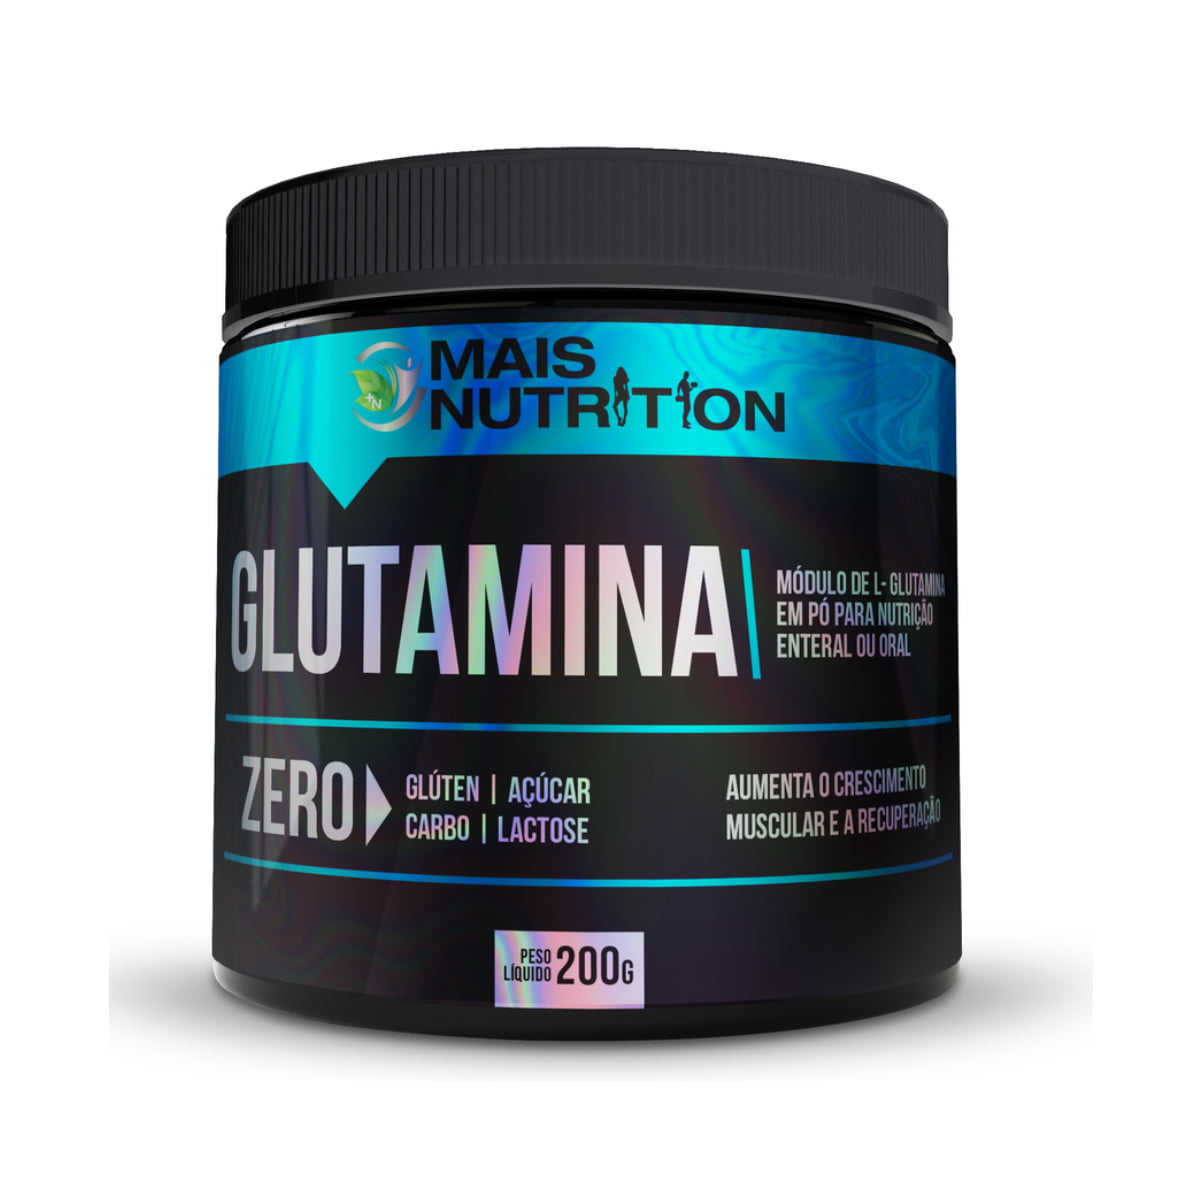 Glutamina 200g - Mais Nutrition